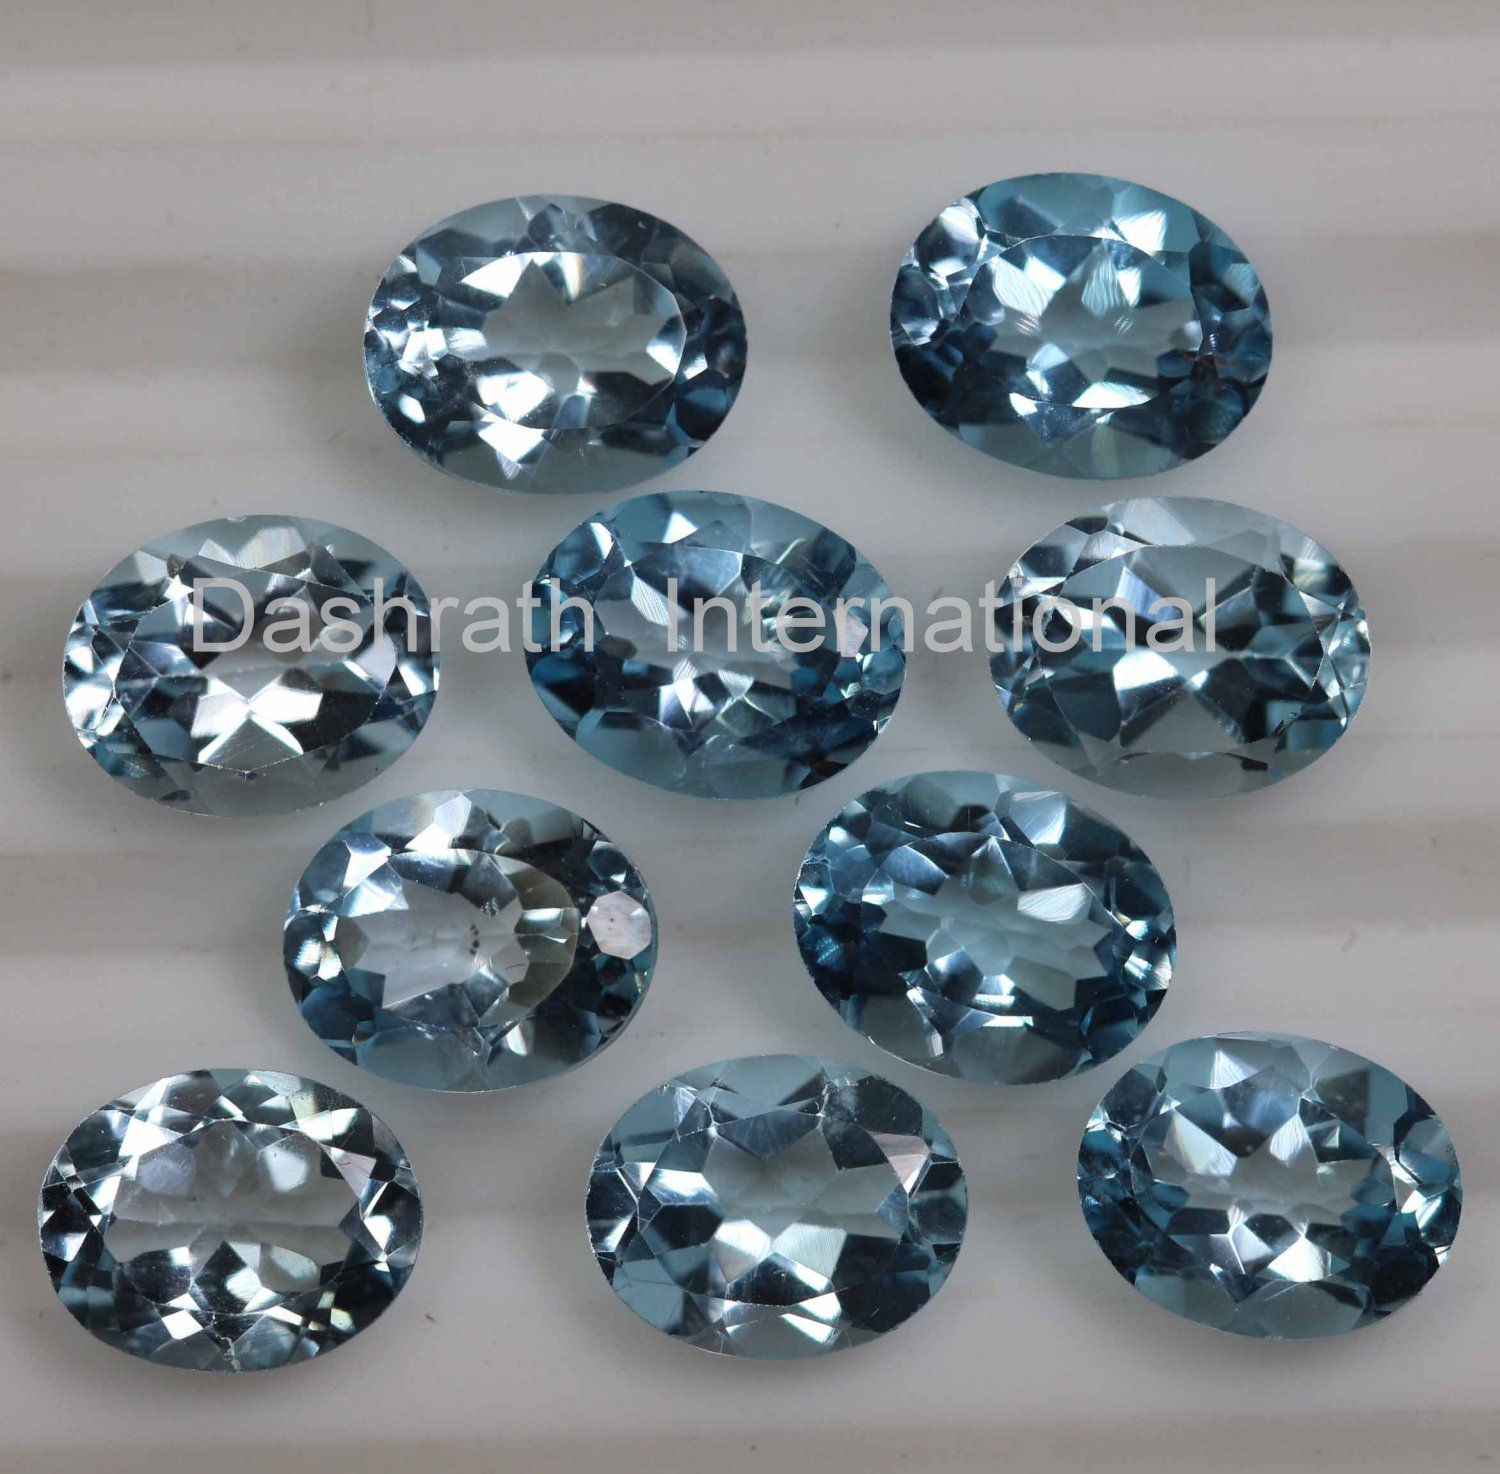 7x5mm Natural Sky Blue Topaz Faceted Cut Oval  2 Piece (1 Pair )  Top Quality Loose Gemstone